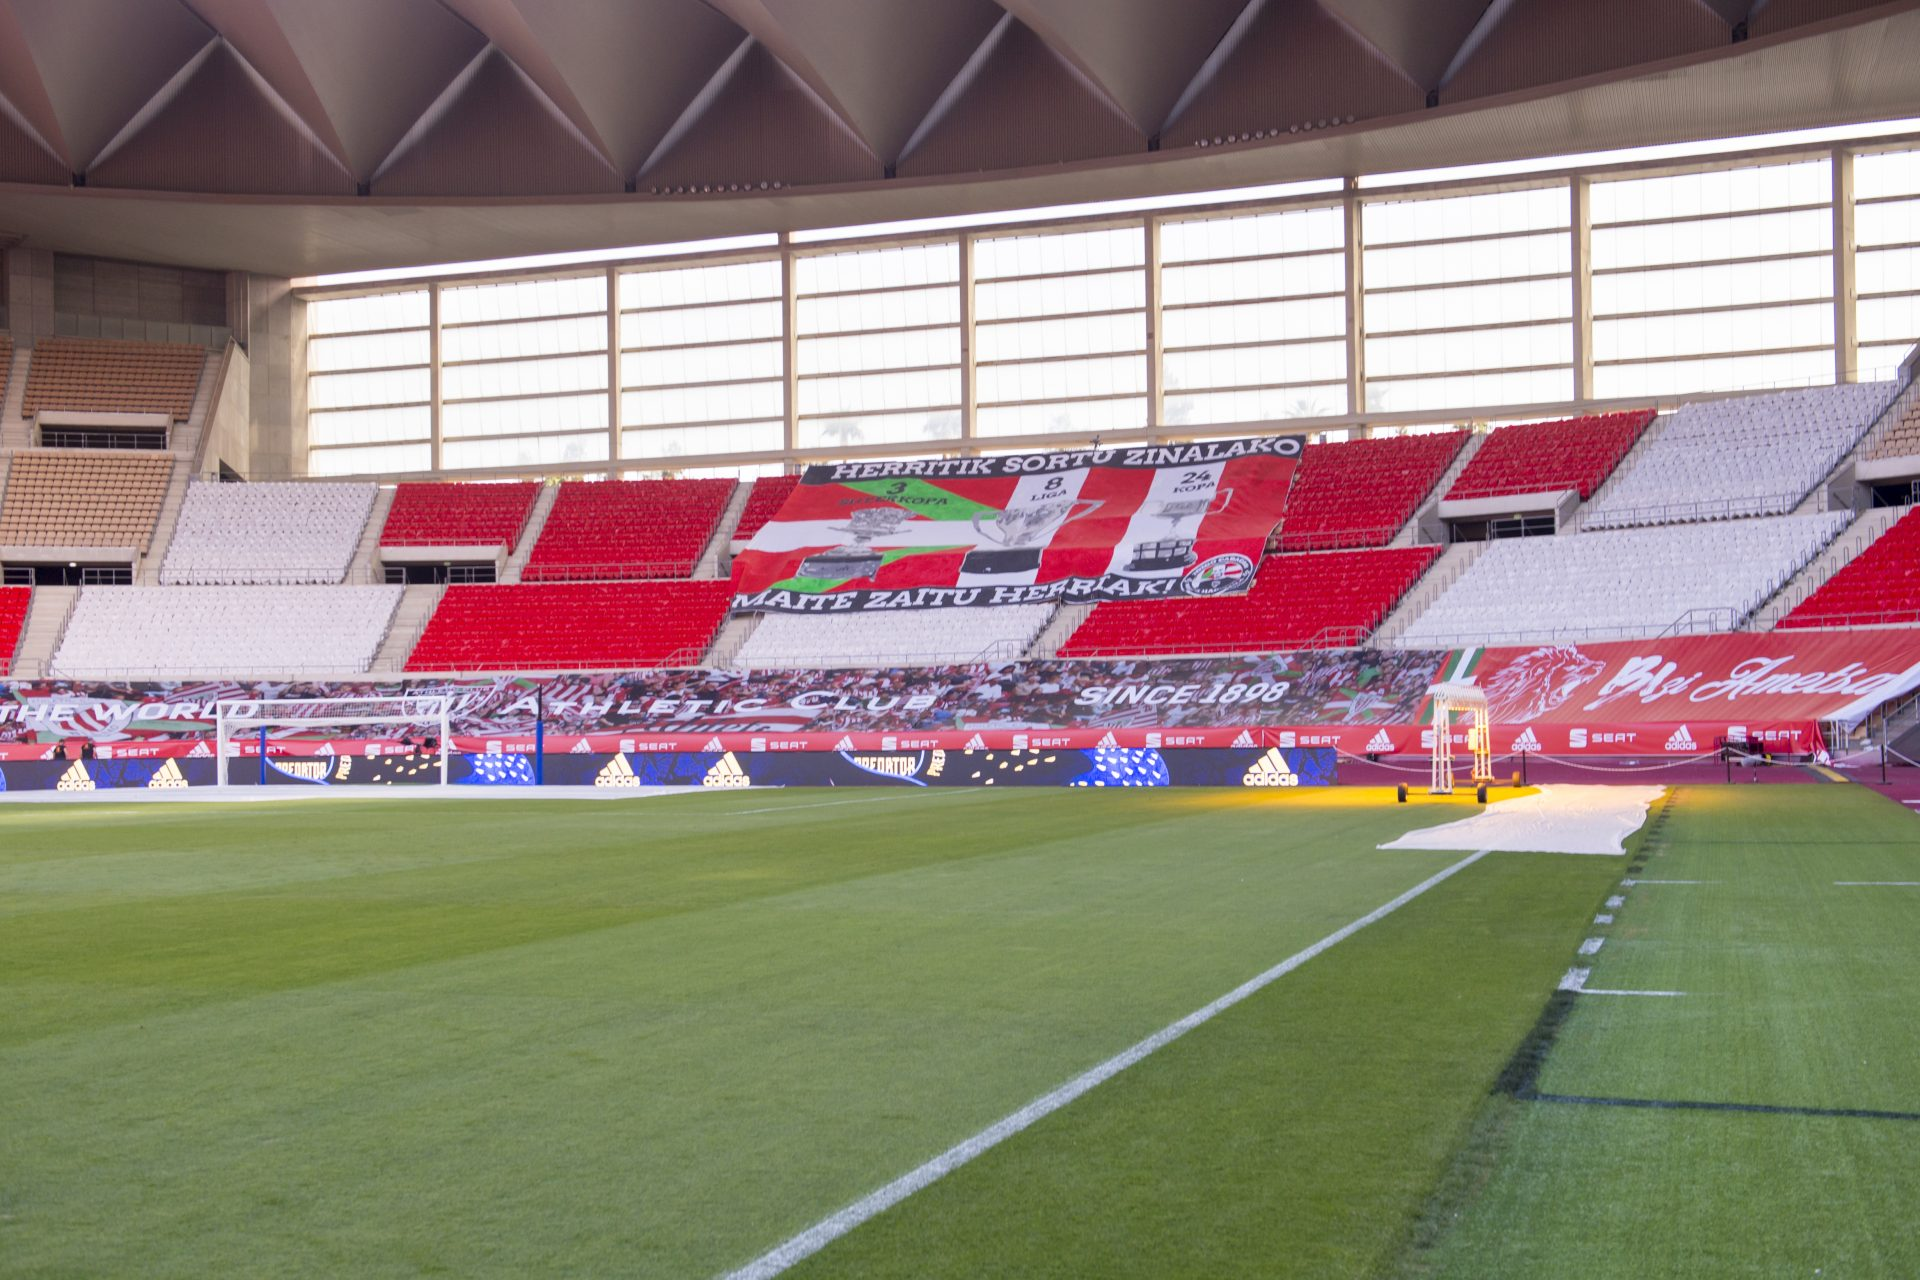 Tifo Athletic Club I Final Copa 2019-20